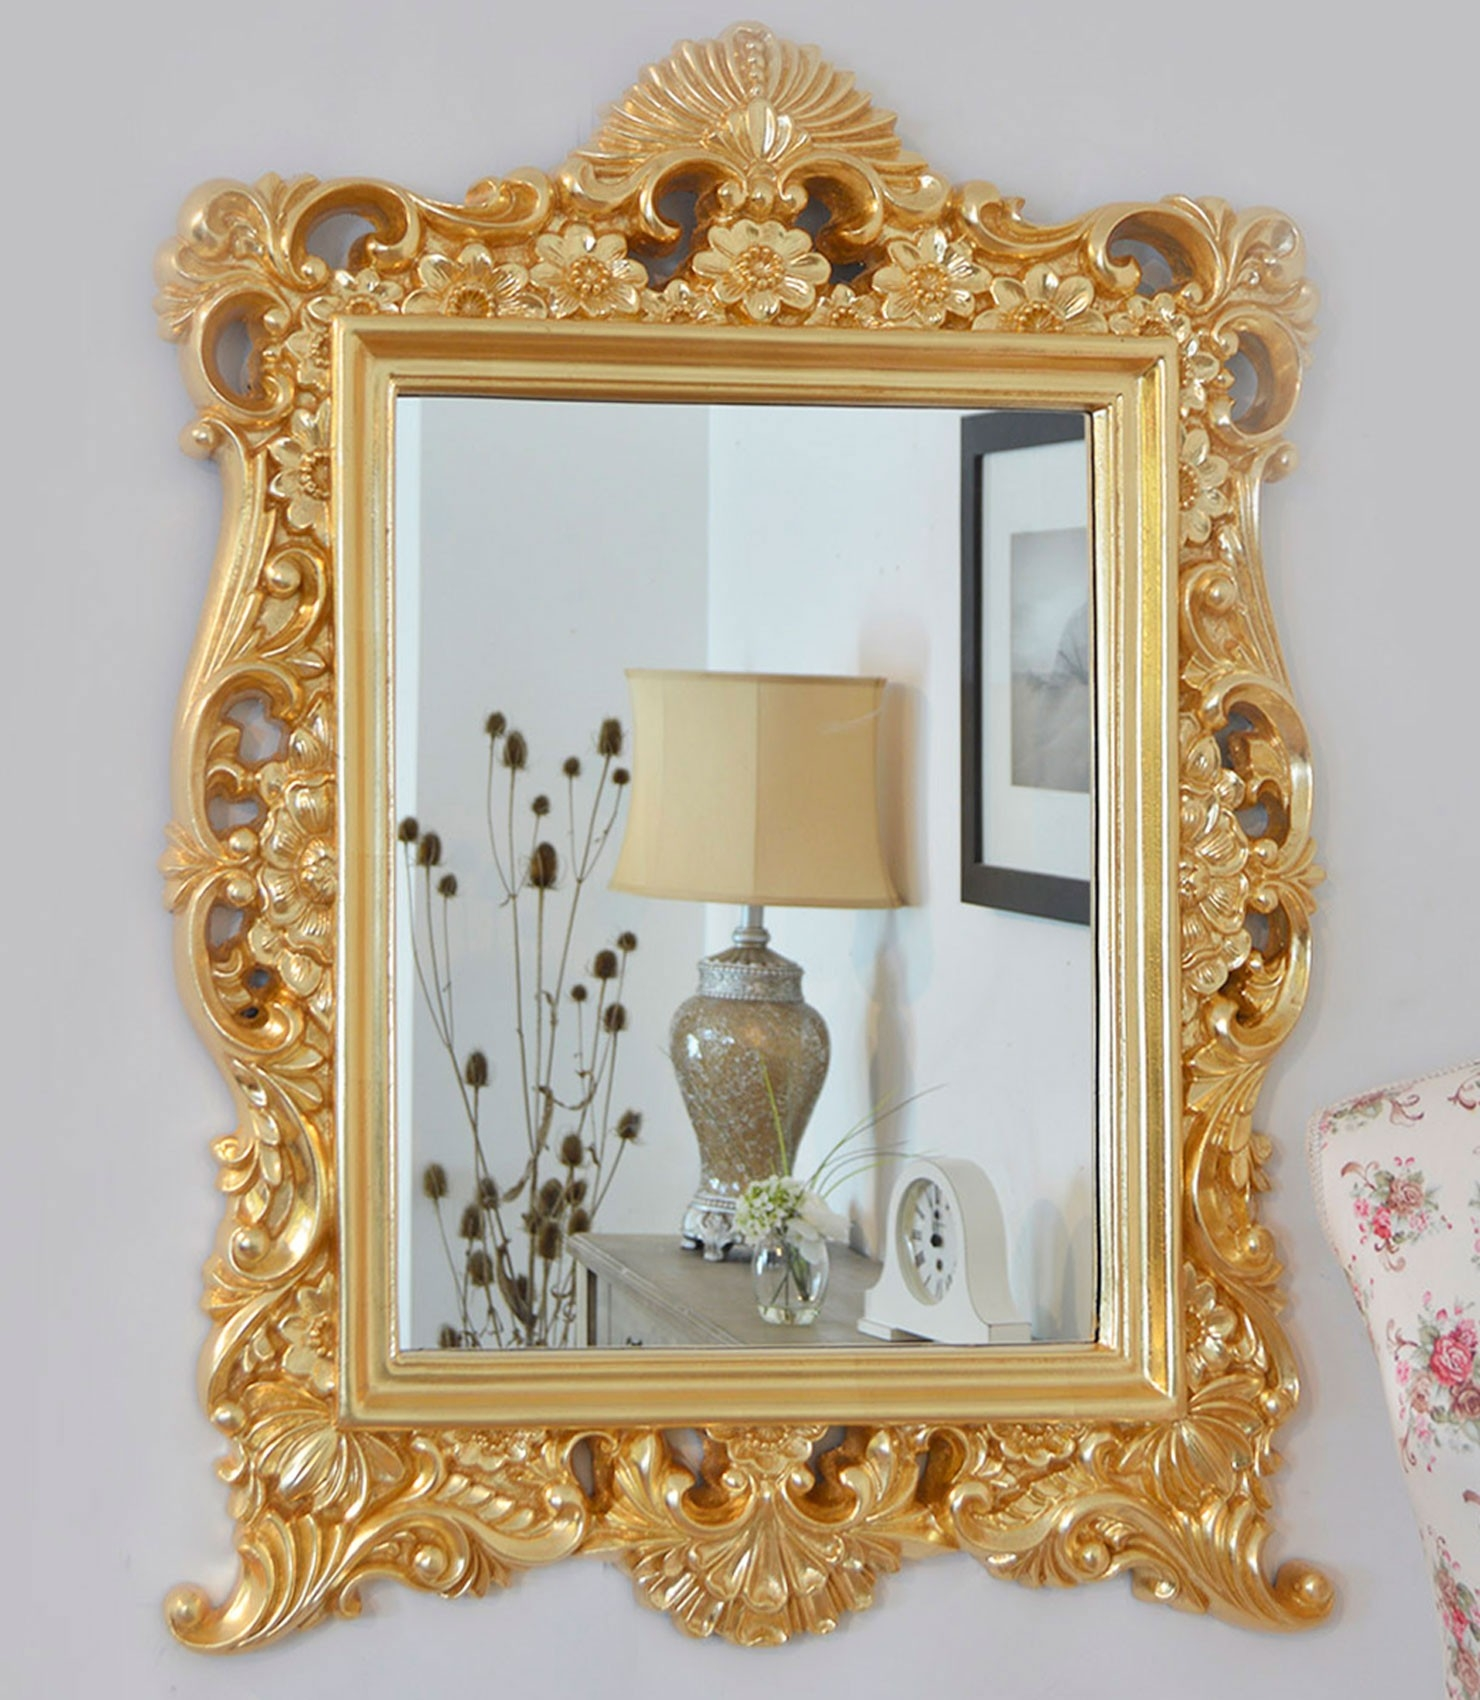 Large Gold Baroque Style Portrait Ornate Wall Mirror 2ft9 X 2ft1 Inside Baroque Mirror Large (View 15 of 15)